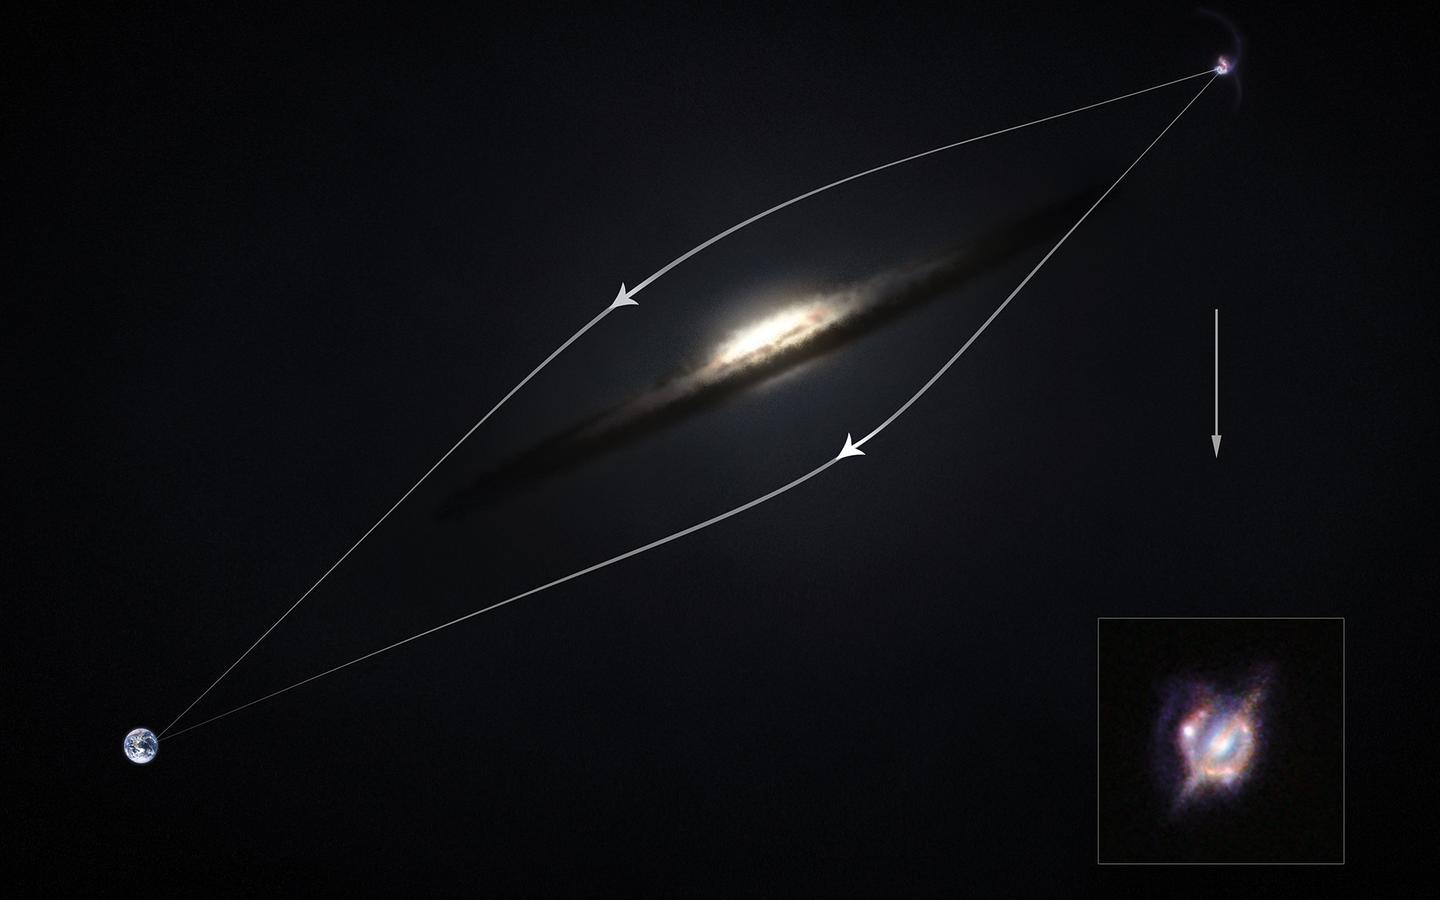 Diagram showing how gravitational lensing deflects light around an obscuring galaxy (Image: ESO/M. Kornmesser)